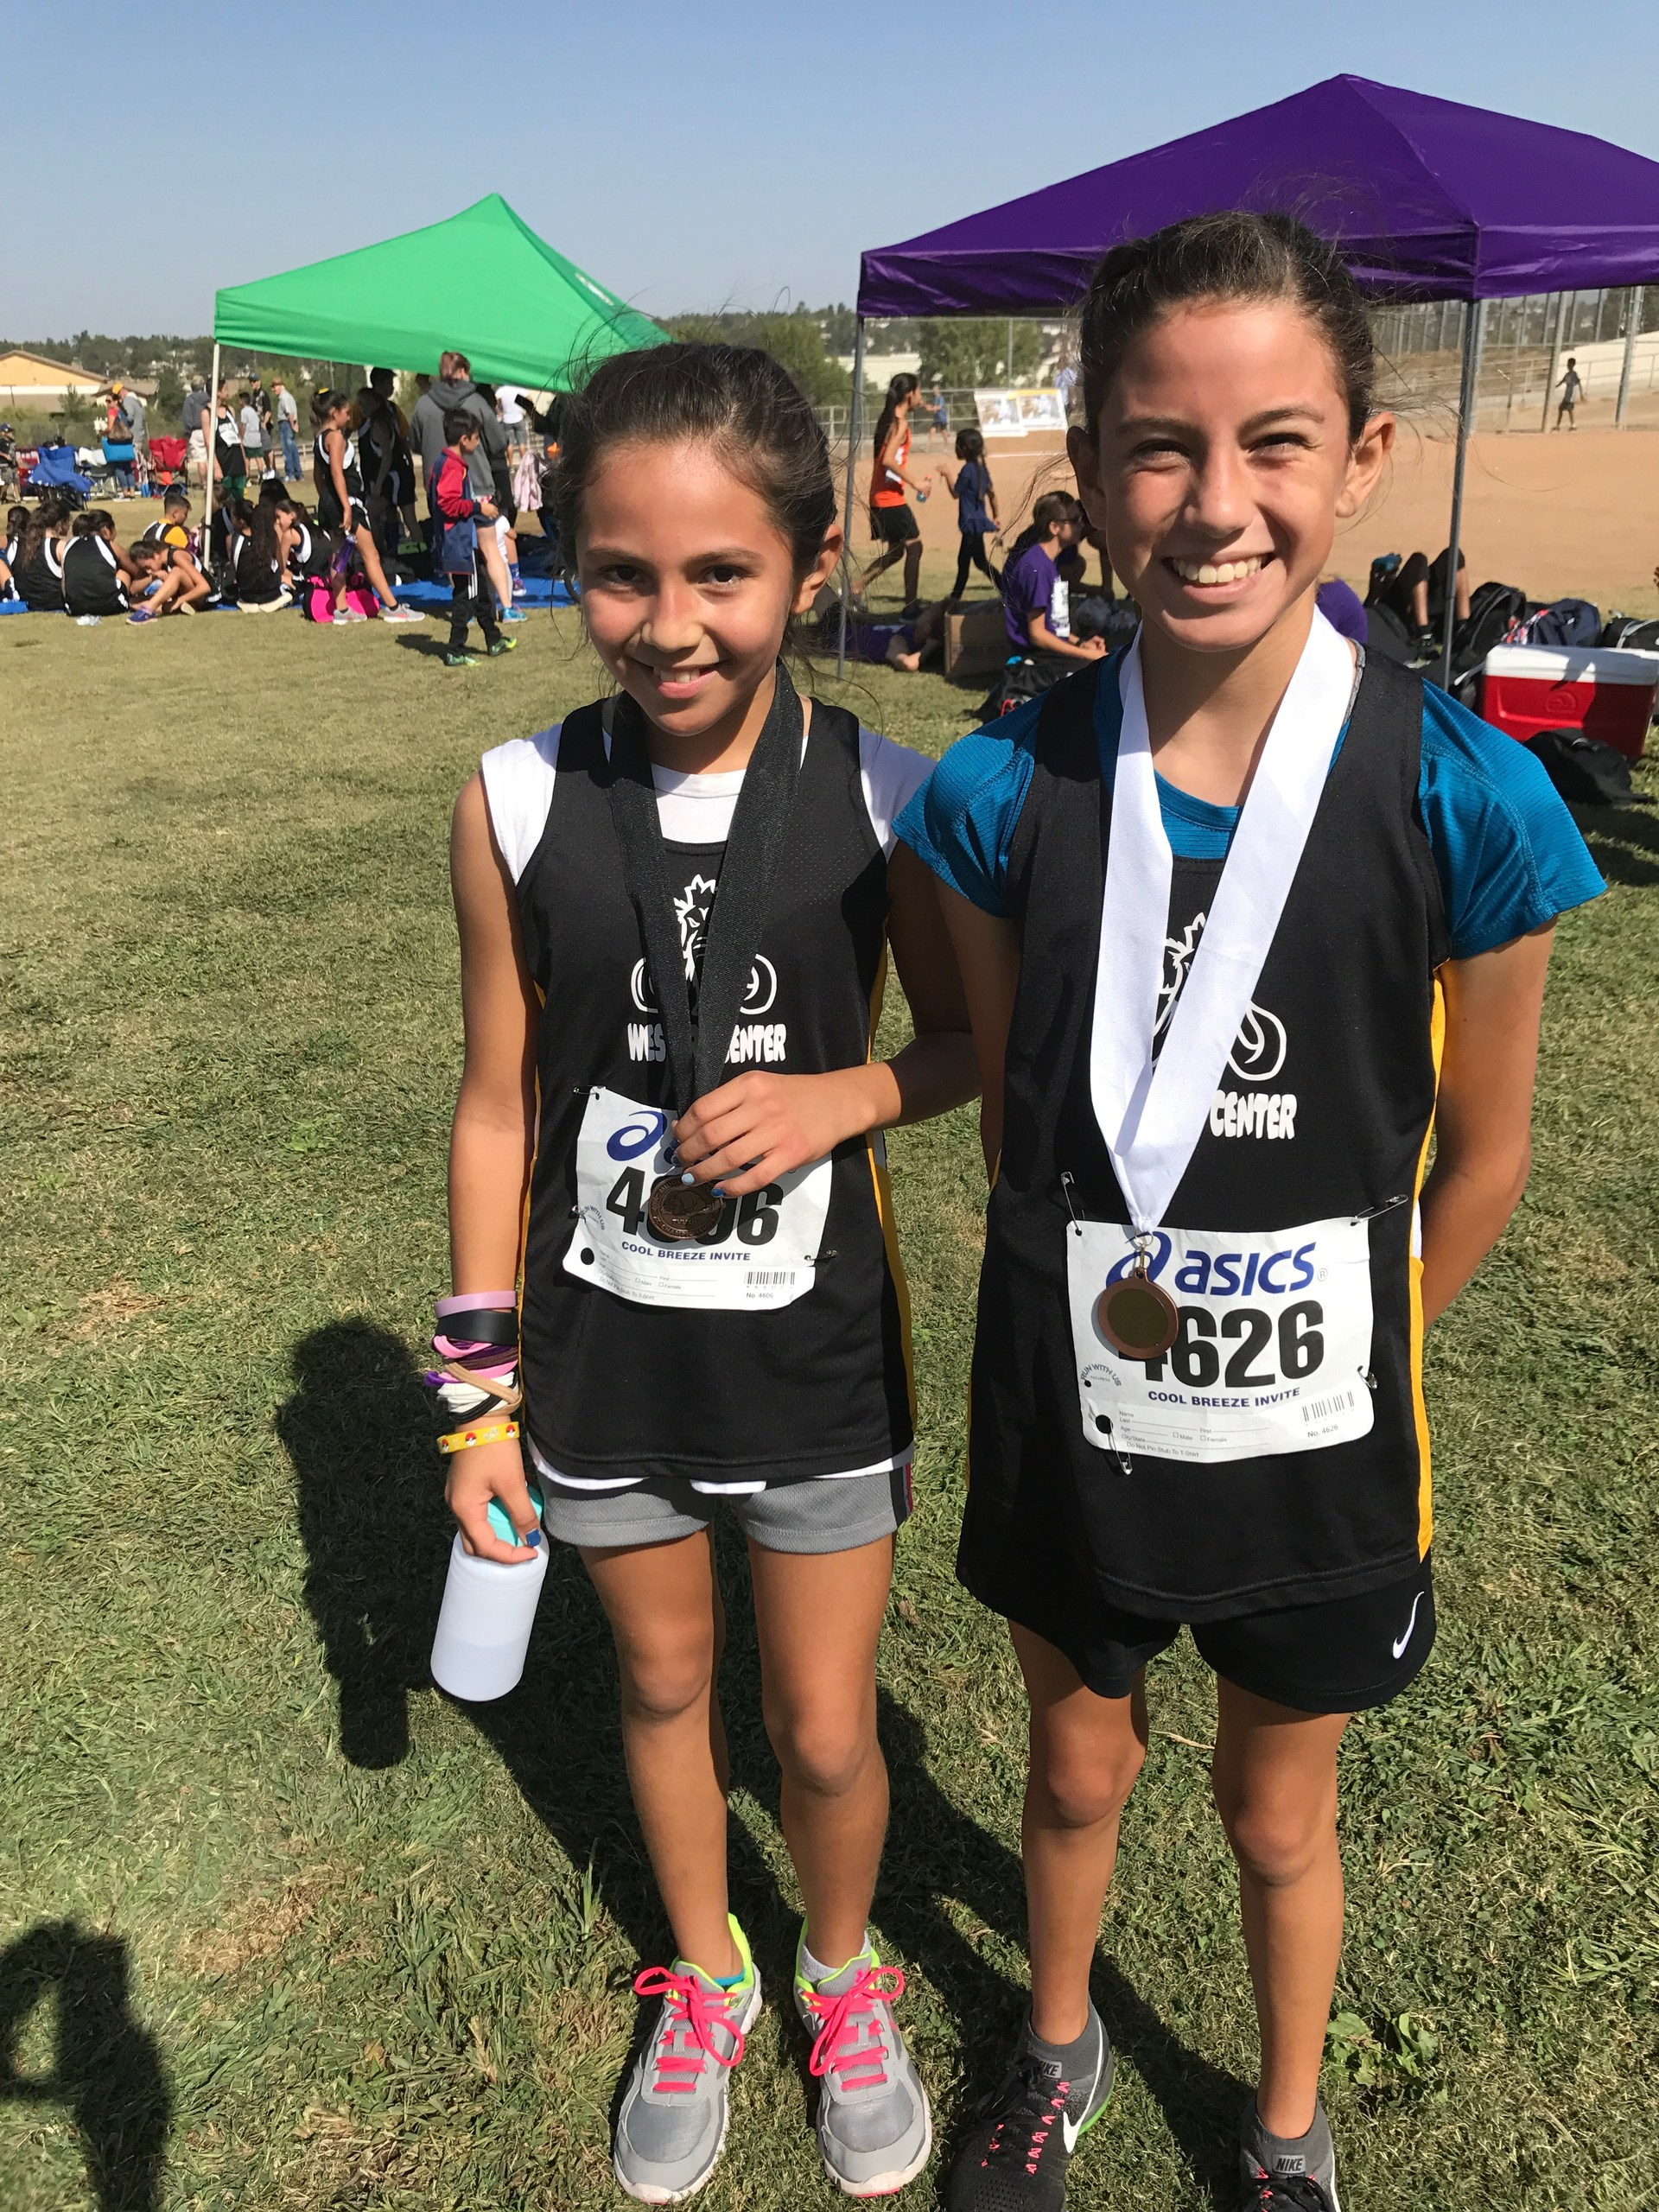 Dalina and Olivia with medals at Vail Ranch!